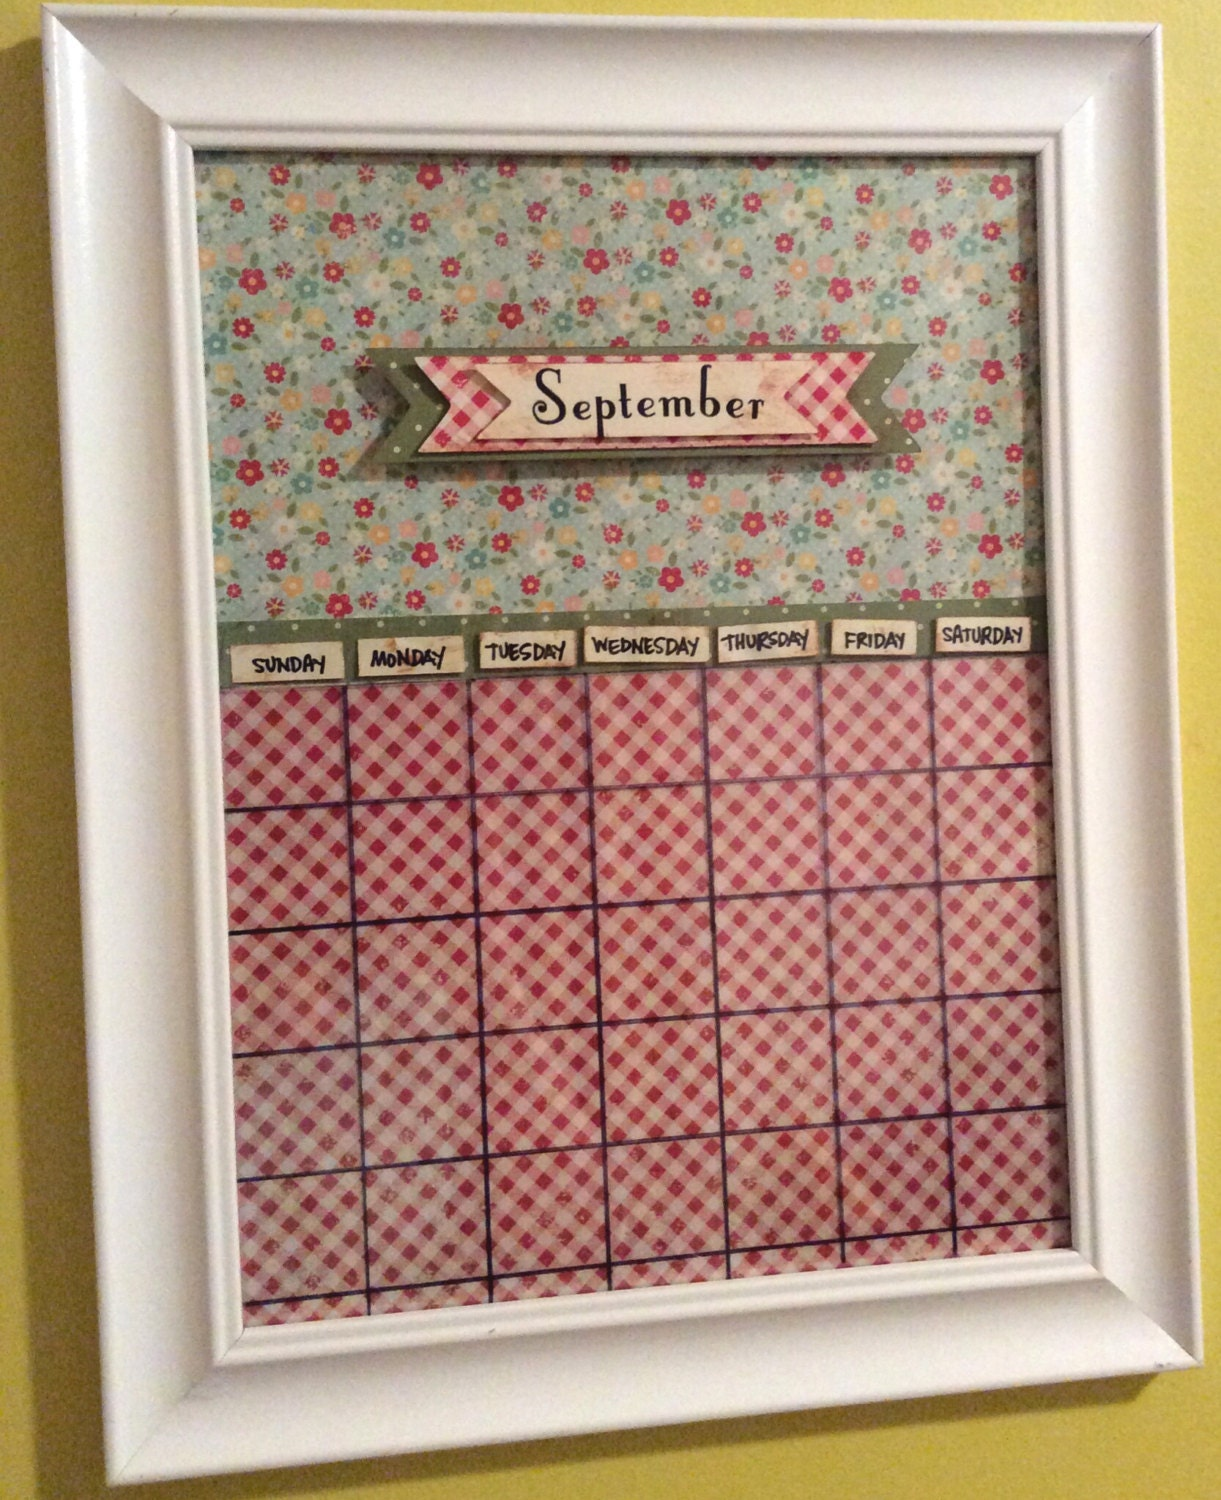 Monthly Calendar Board : Monthly magnetic dry erase calendar board by